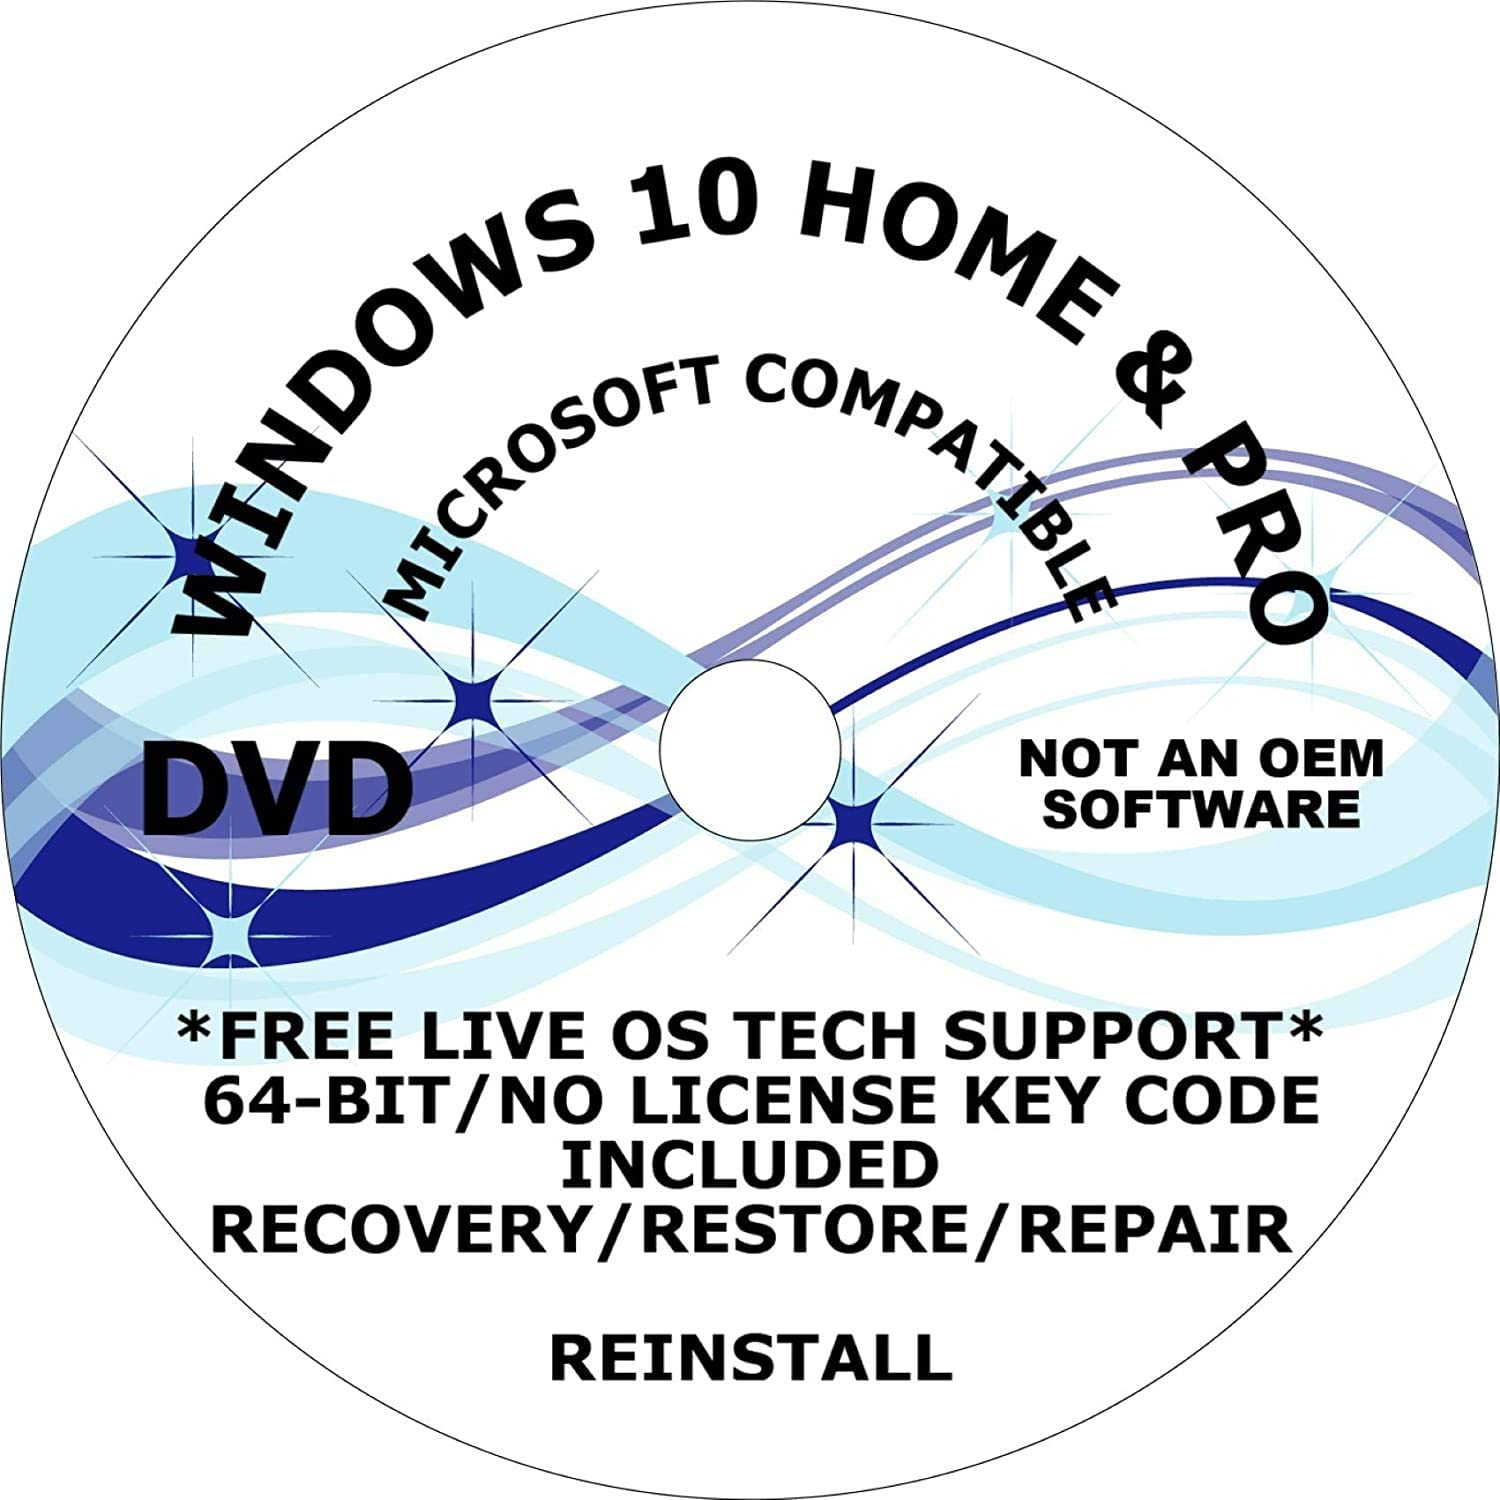 WINDOWS 10 PRO and HOME 64-BIT DVD RECOVERY FIX REINSTALL REPAIR REPLACE BOOT REBOOT RECOVERY INSTALL RESTORE TO FACTORY FRESH CONDITION FREE LIVE TECH SUPPORT COMPATIBLE TO MICROSOFT WINDOWS